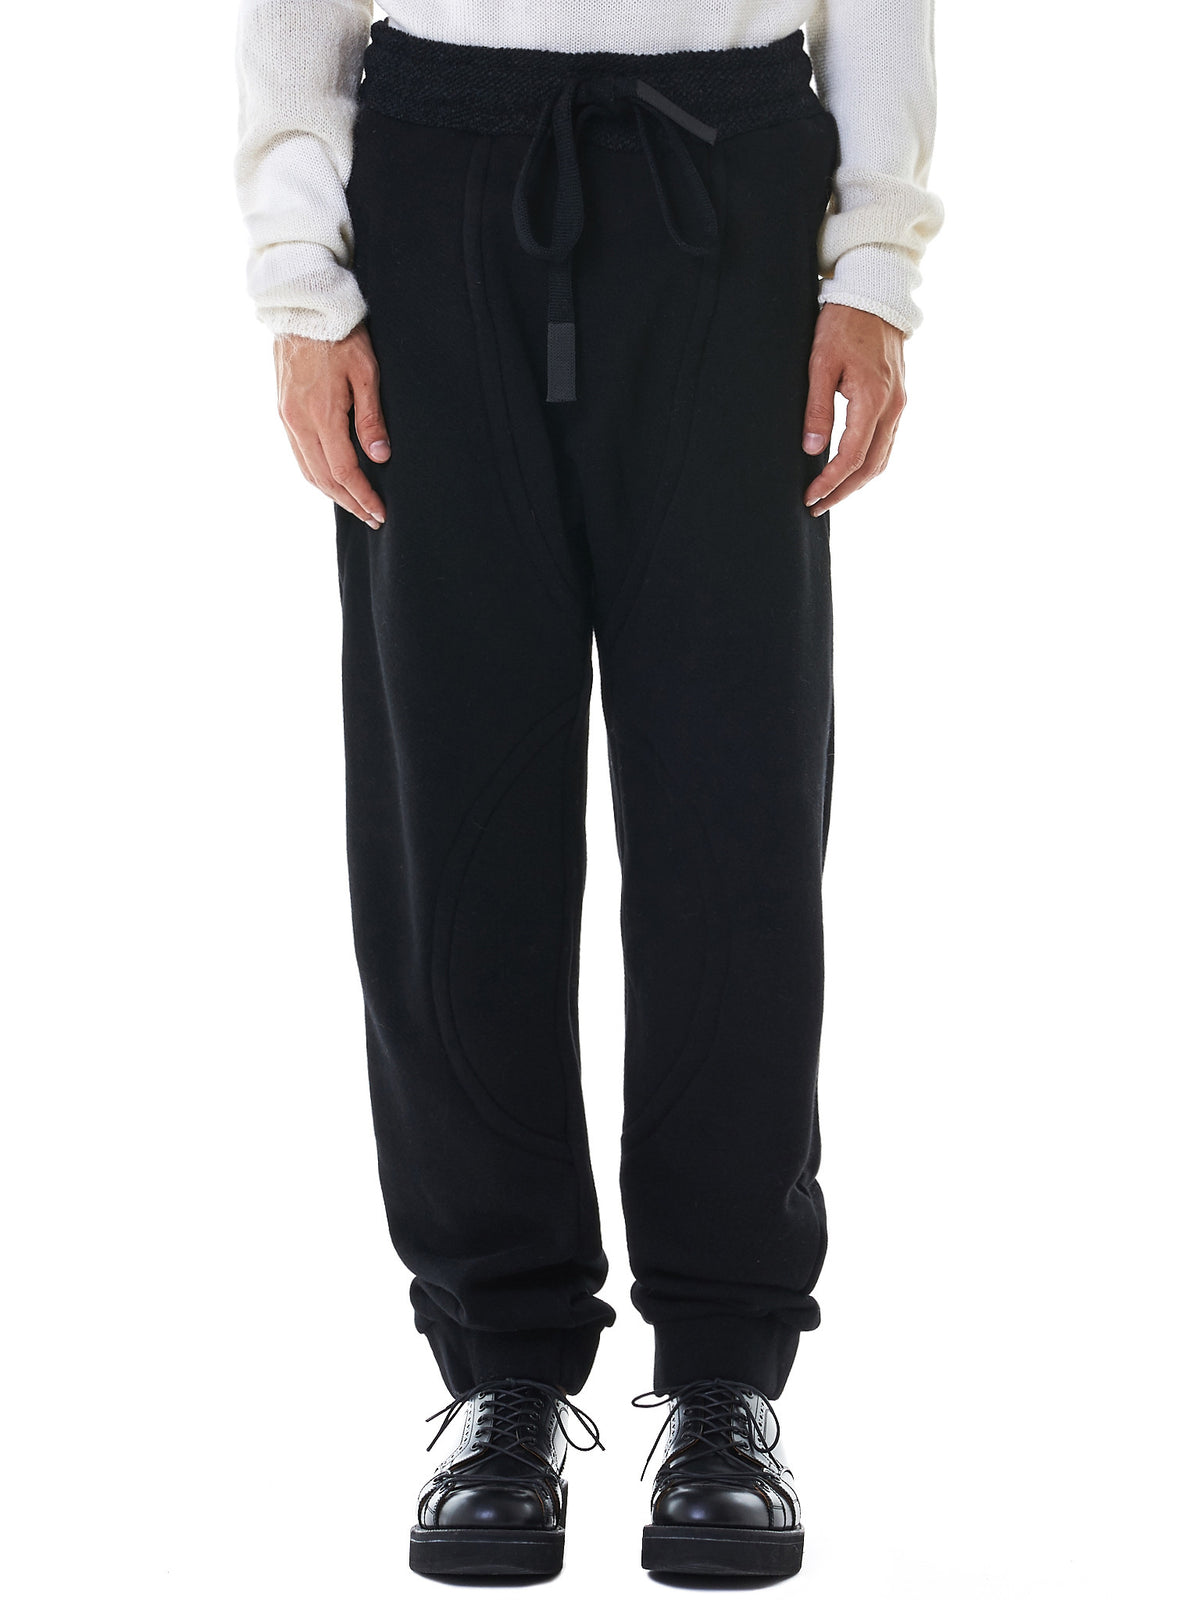 Relaxed Track Pants (M21-573-640-BLACK-BLACK)